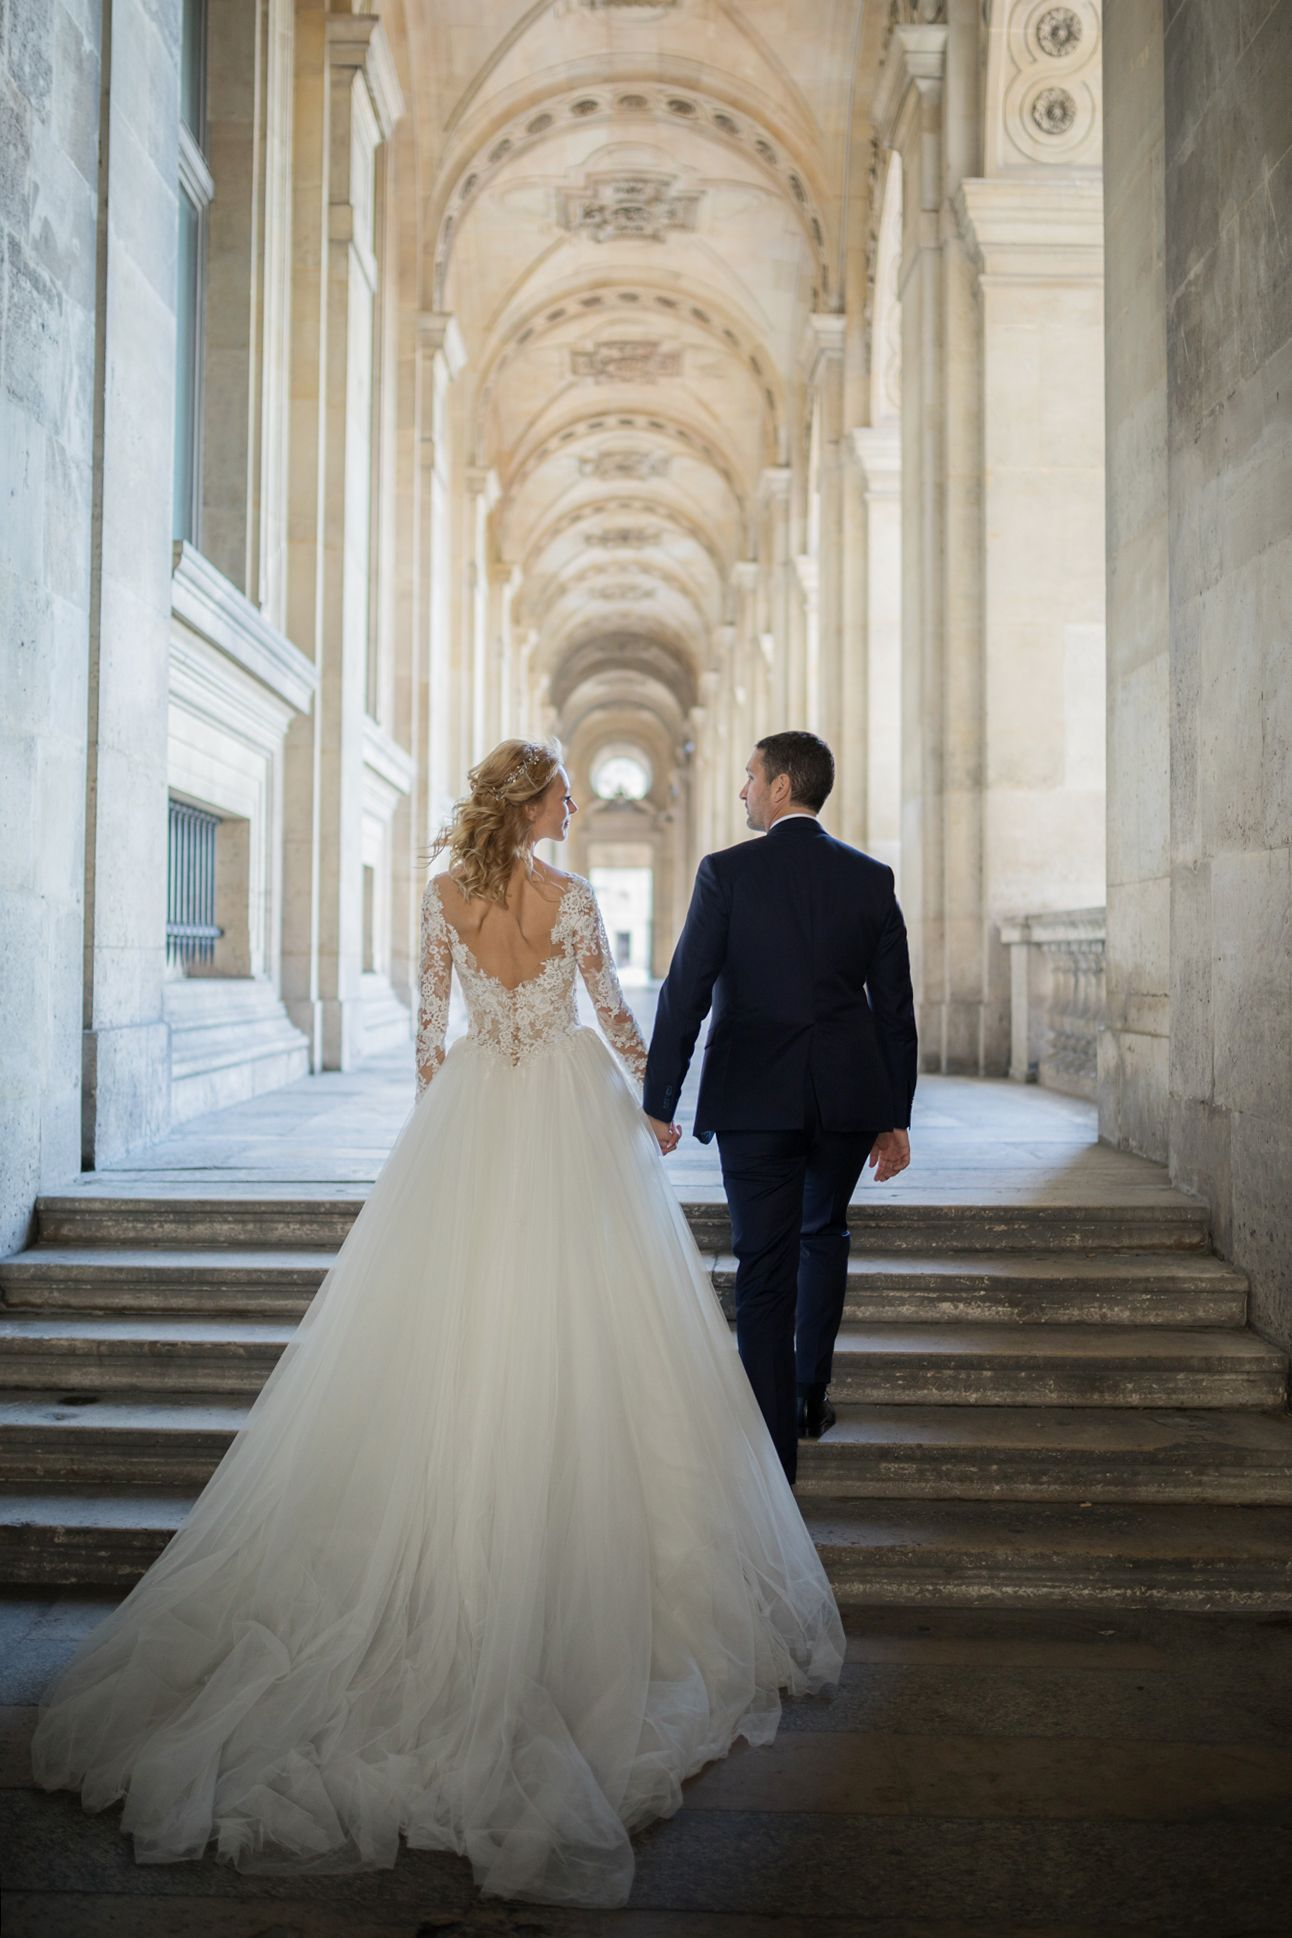 PronoviasBrides tie the knot in style. What better way to